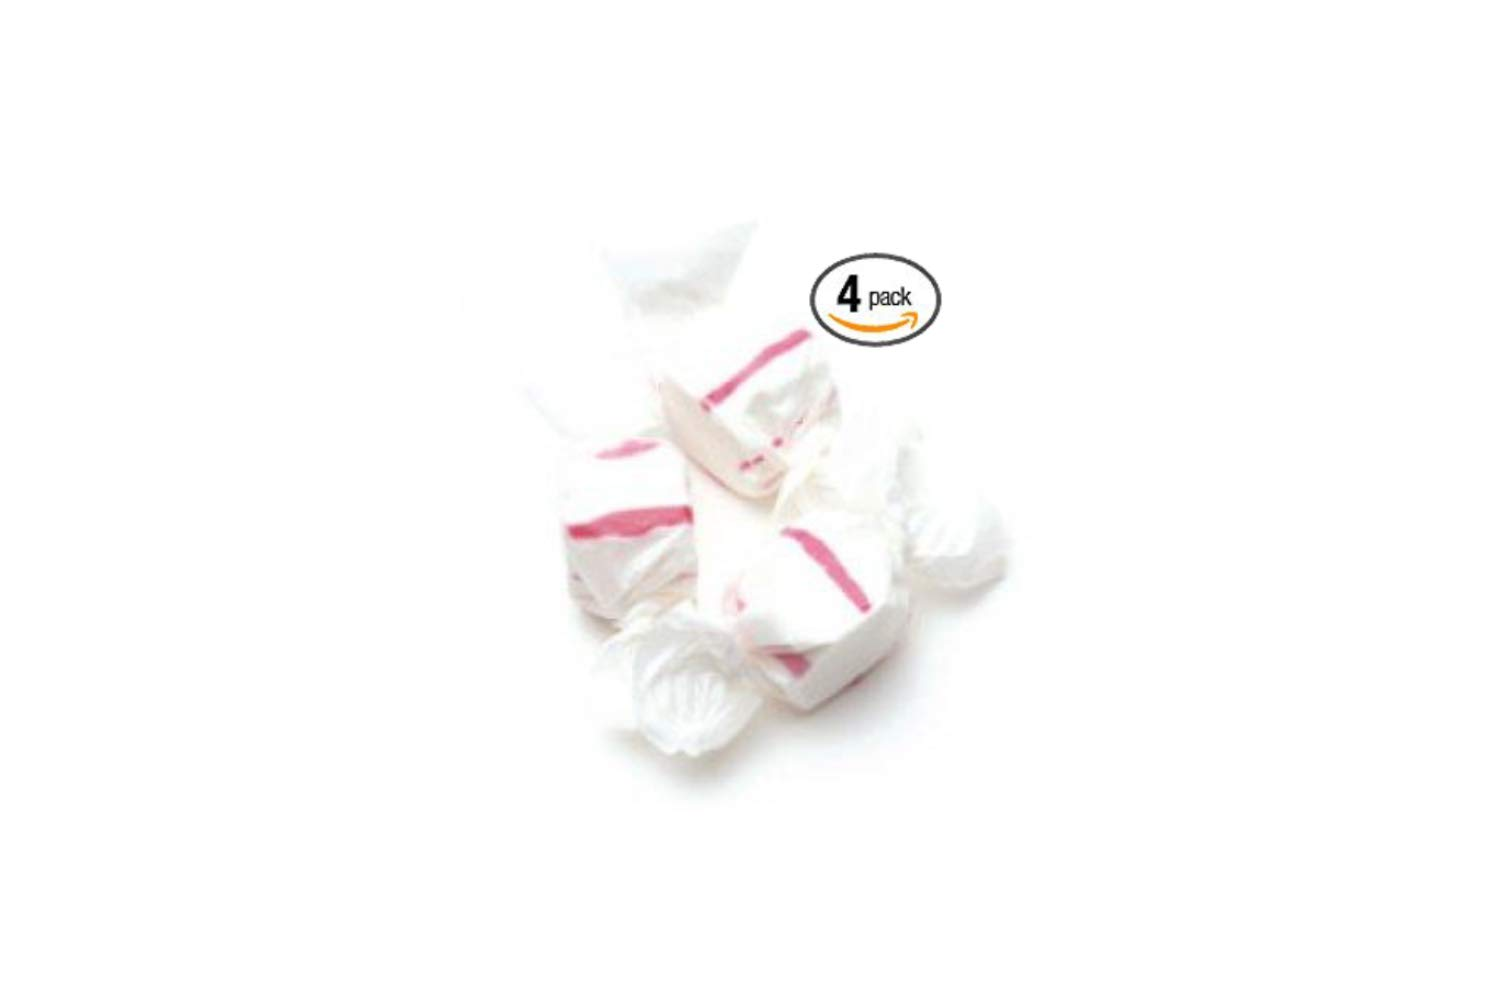 Red & White Peppermint Salt Water Taffy 48 Ounces by Sweets (4 Pack)